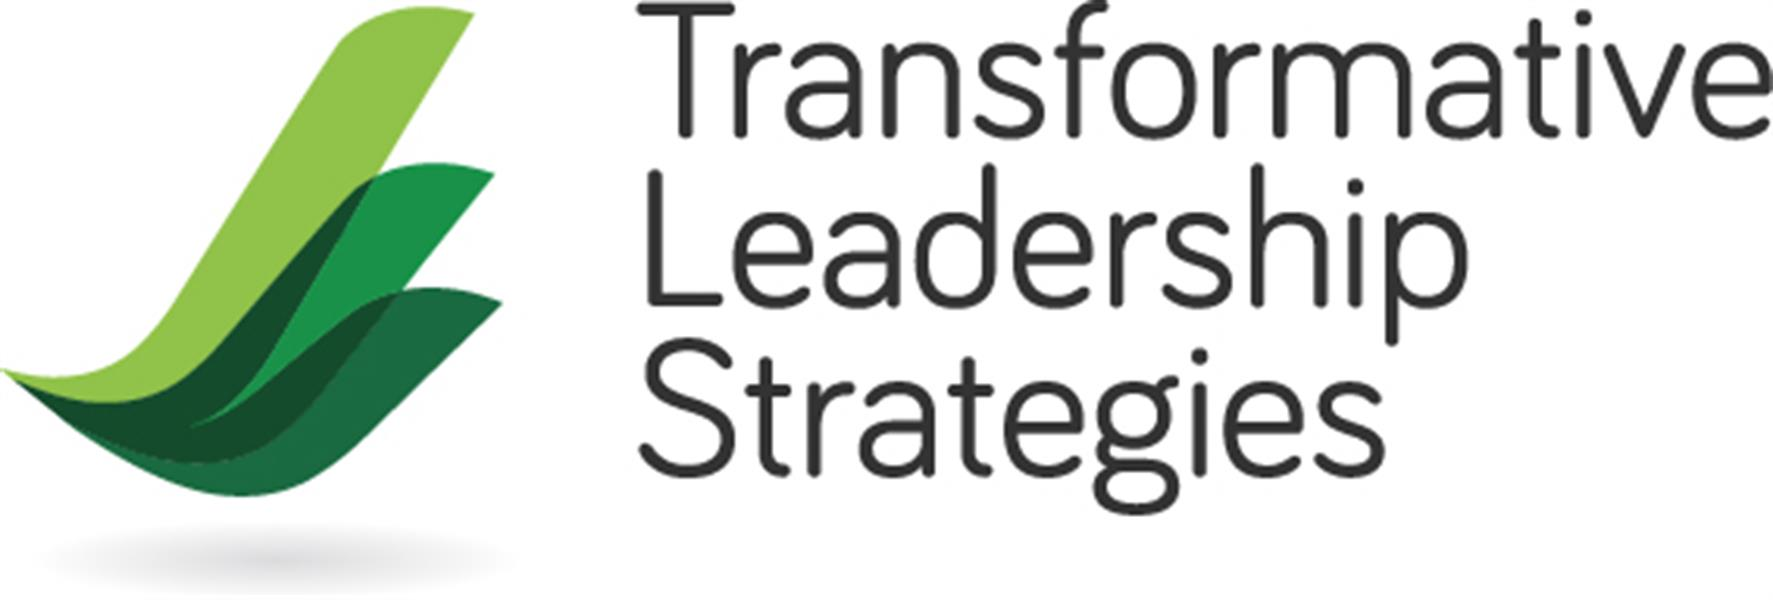 Transformative Leadership Strategies